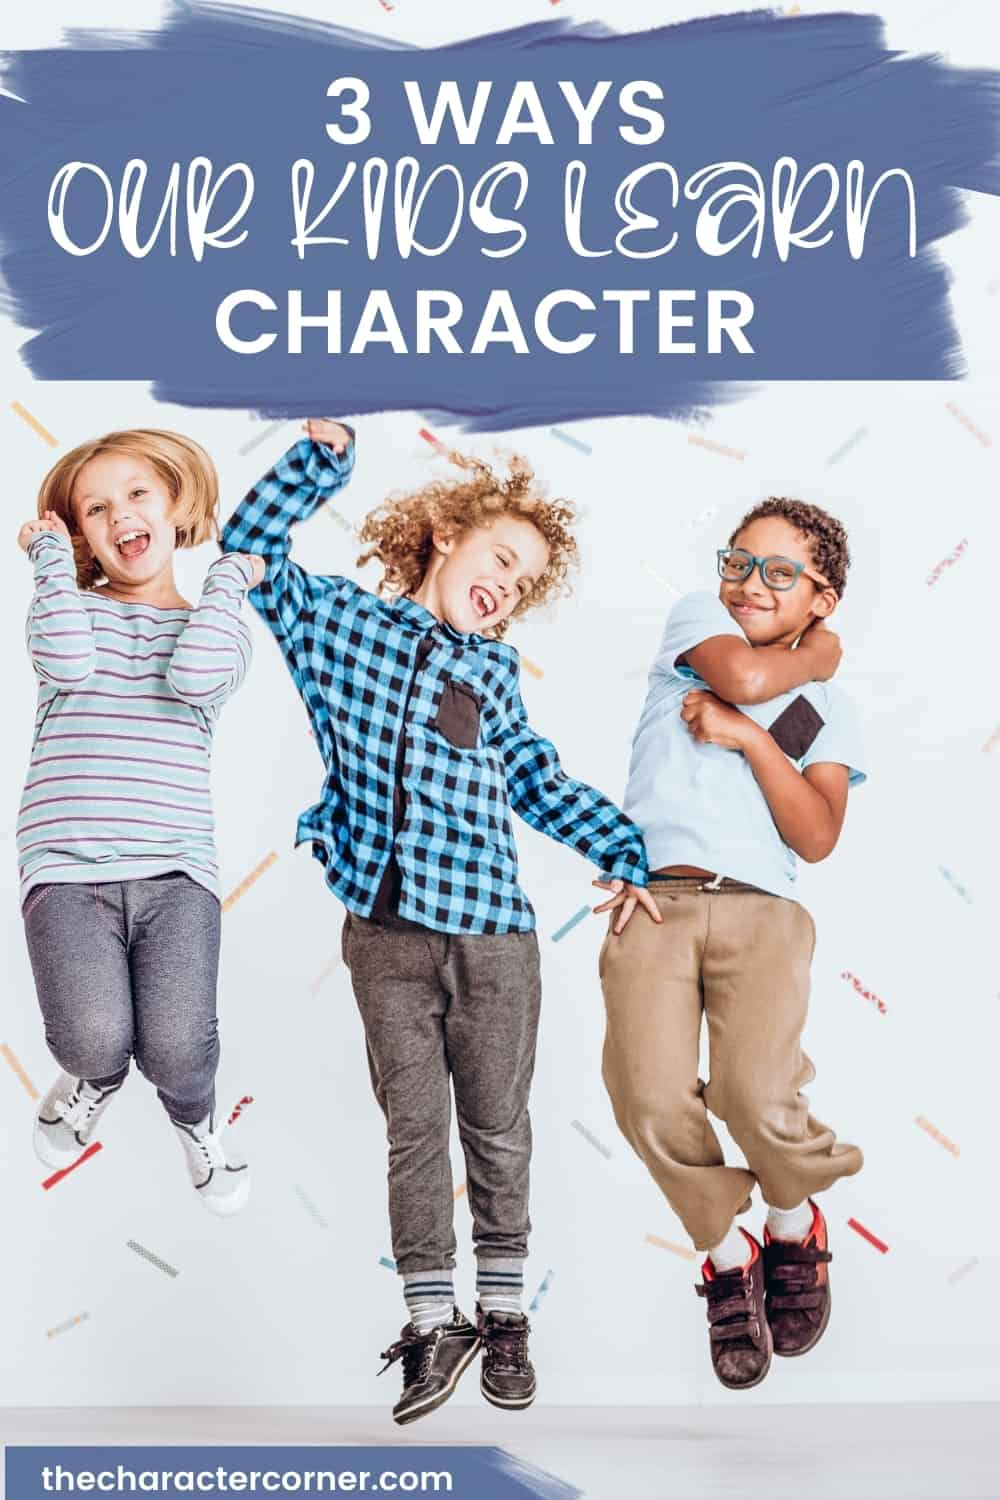 kids happy and jumping together text on image reads: 3 Ways Our Kids Learn Character